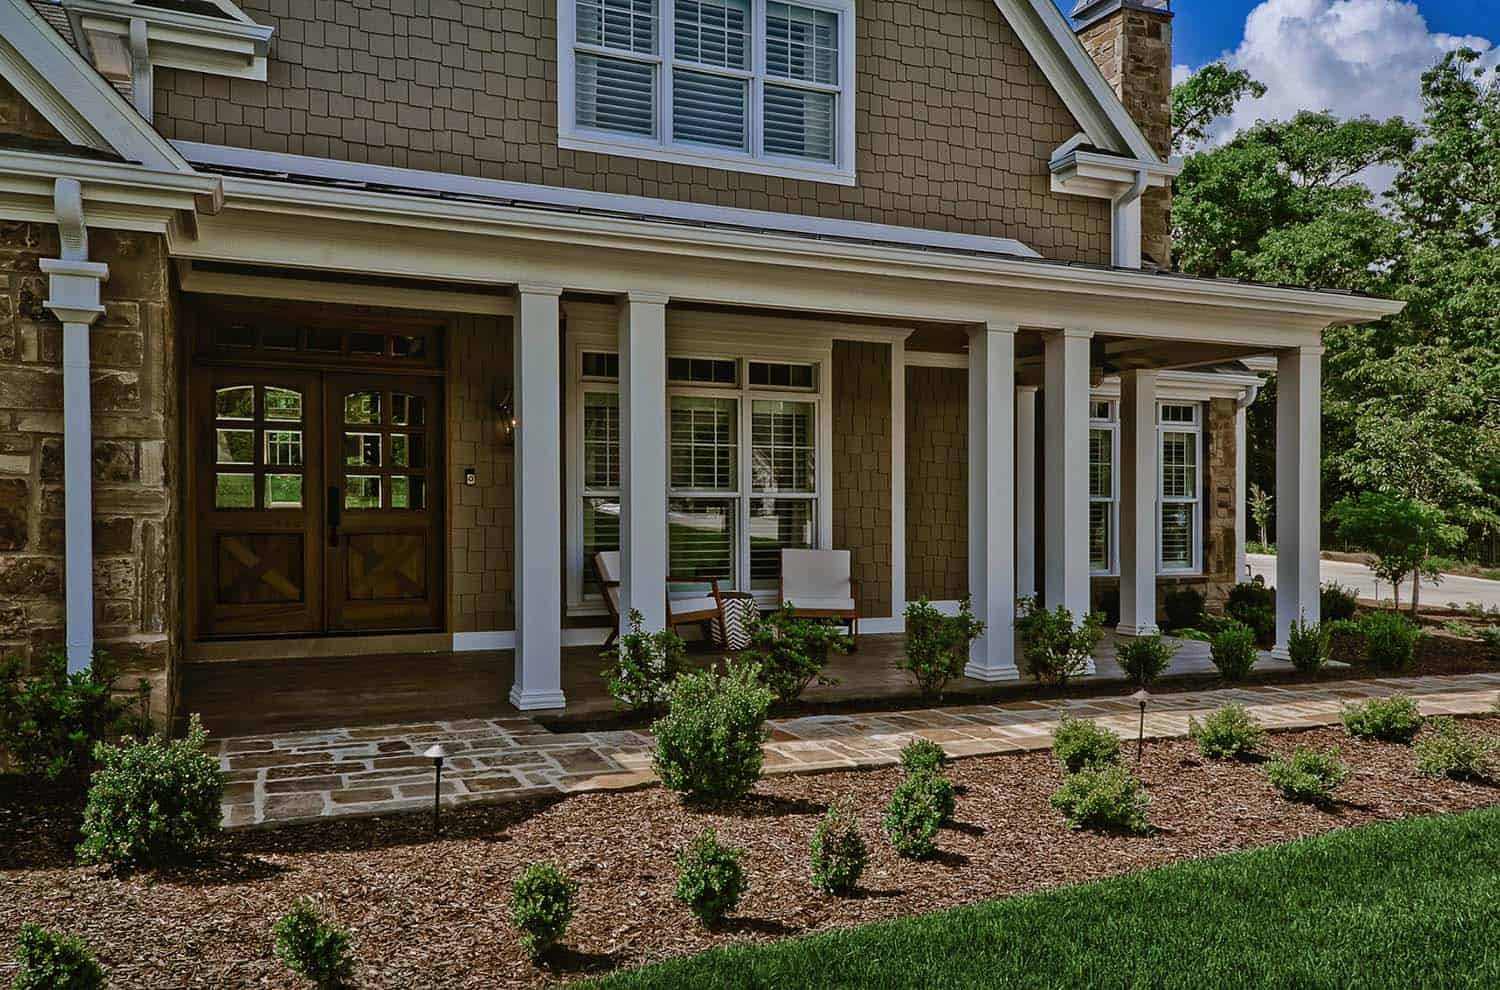 craftsman-style-home-porch